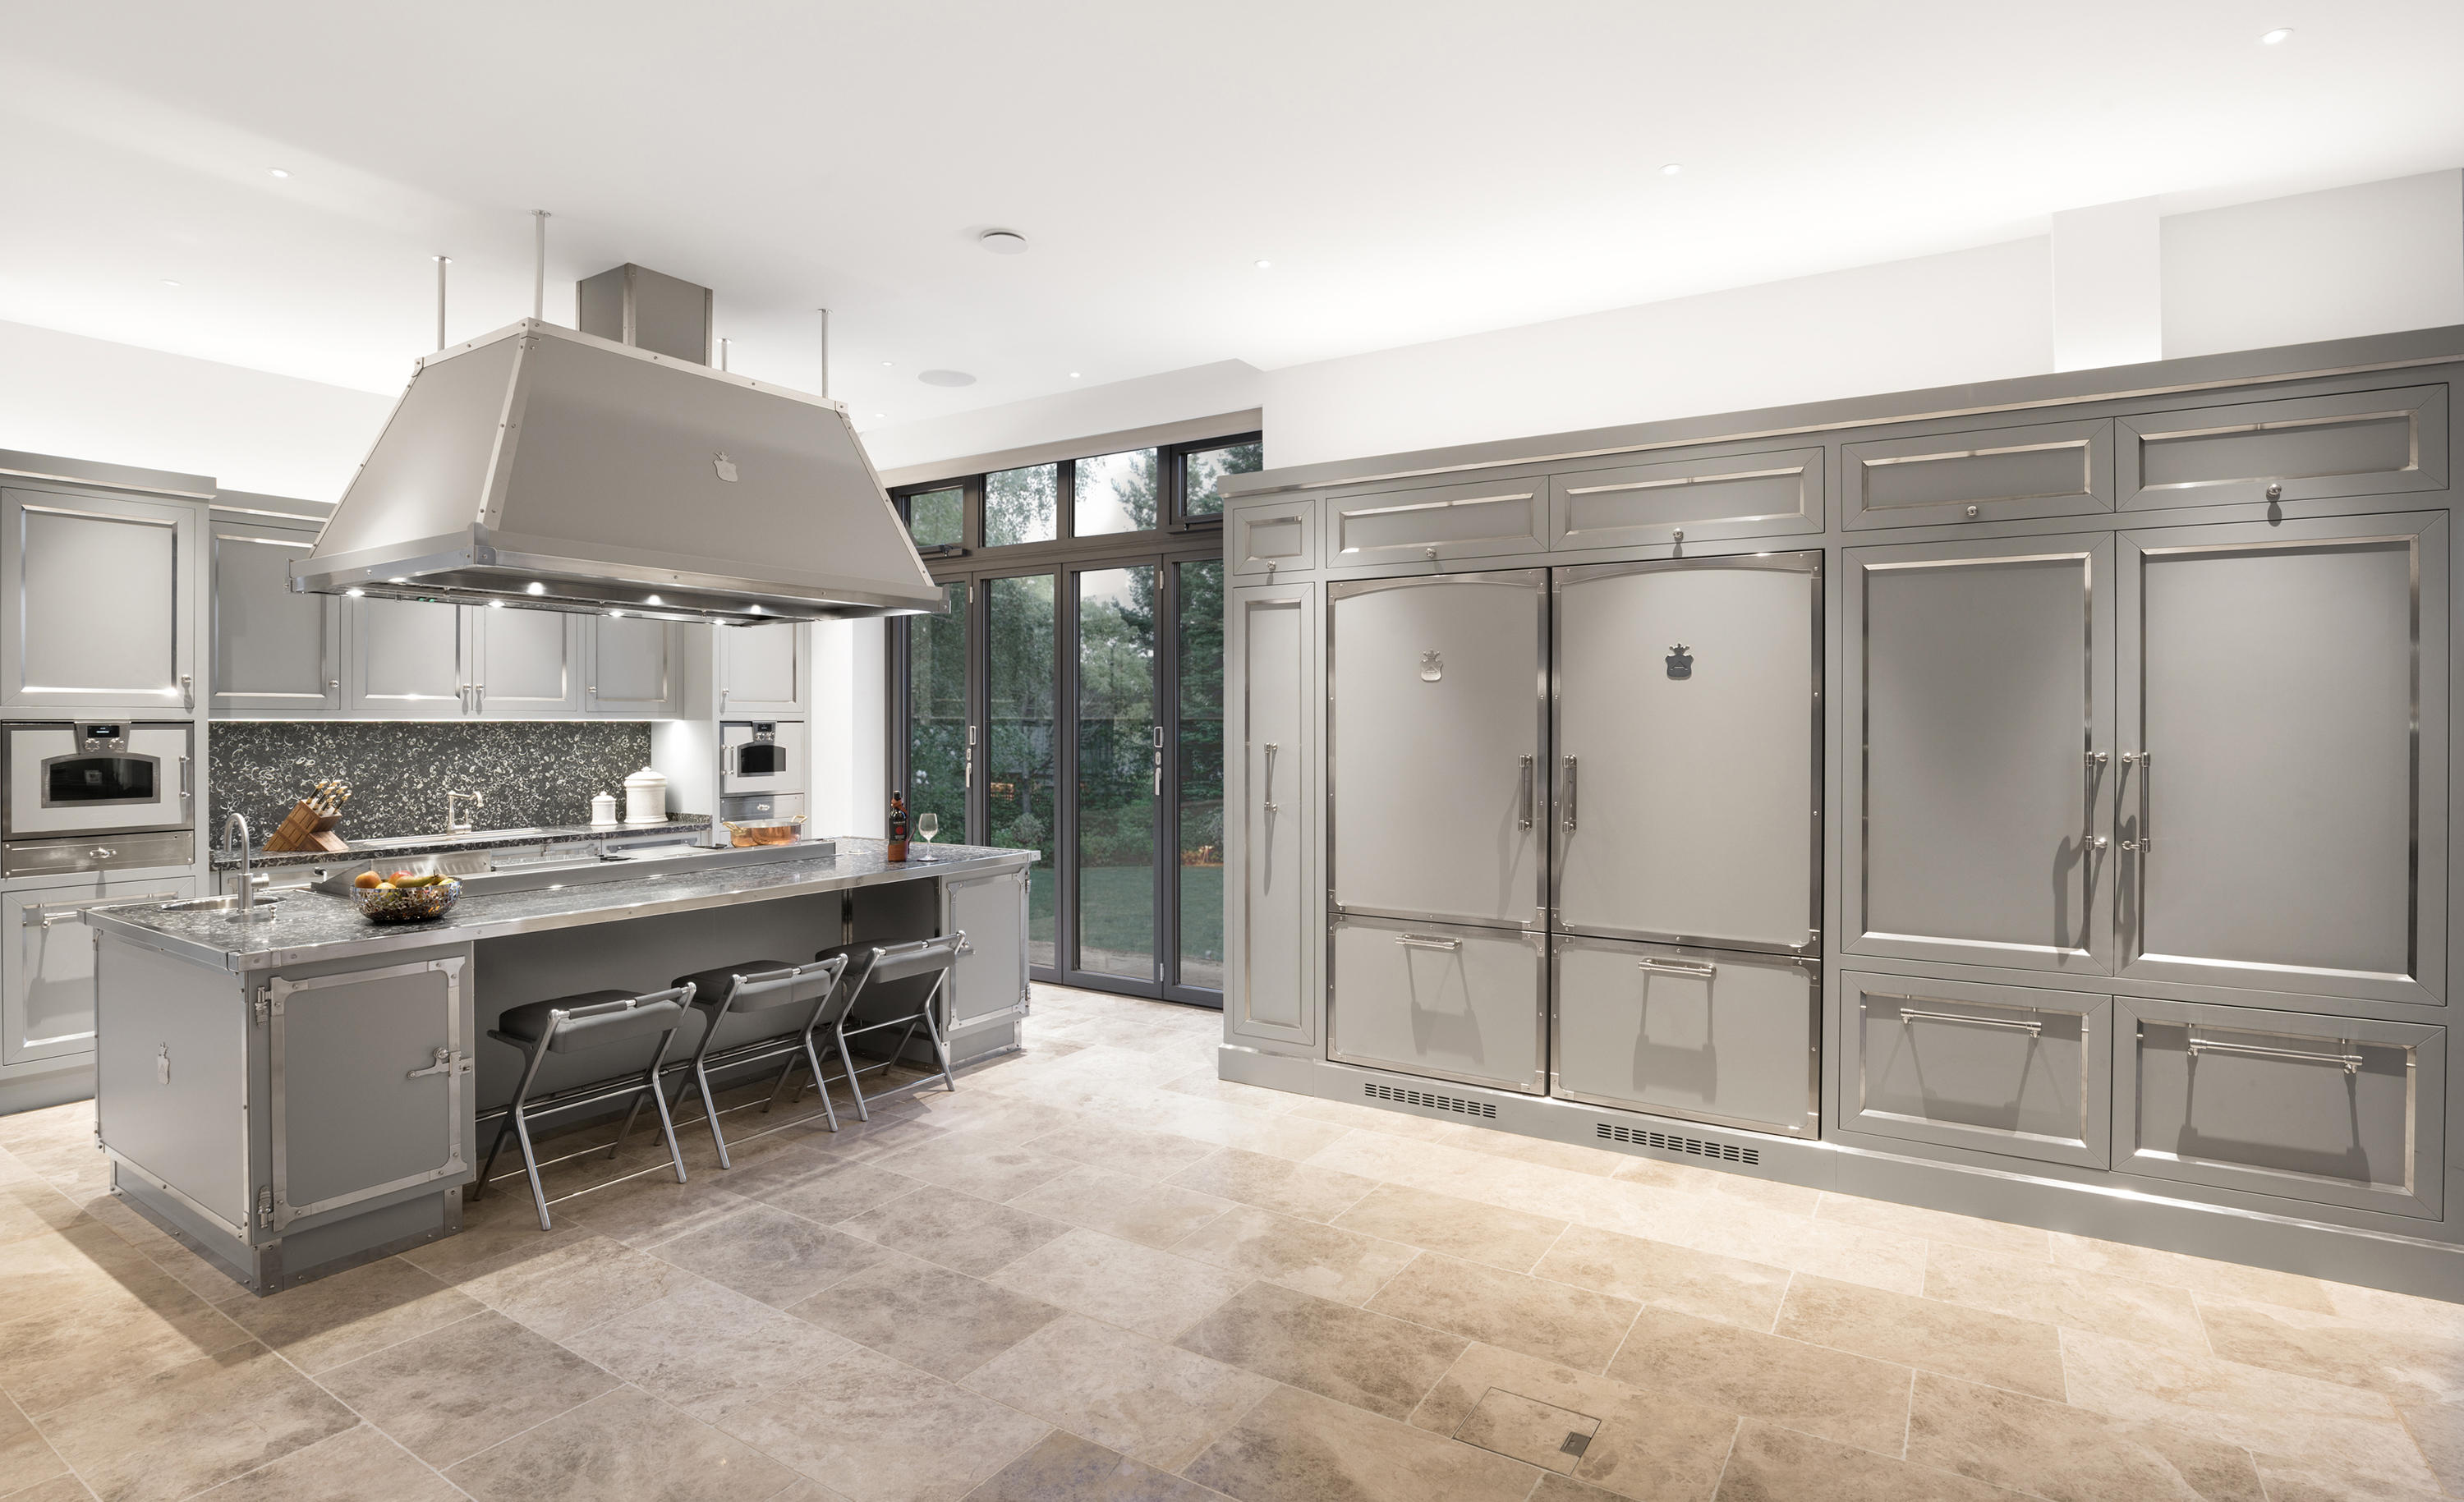 SOFT GREY NICHELED BRASS KITCHEN Fitted Kitchens From Officine - Grey fitted kitchens